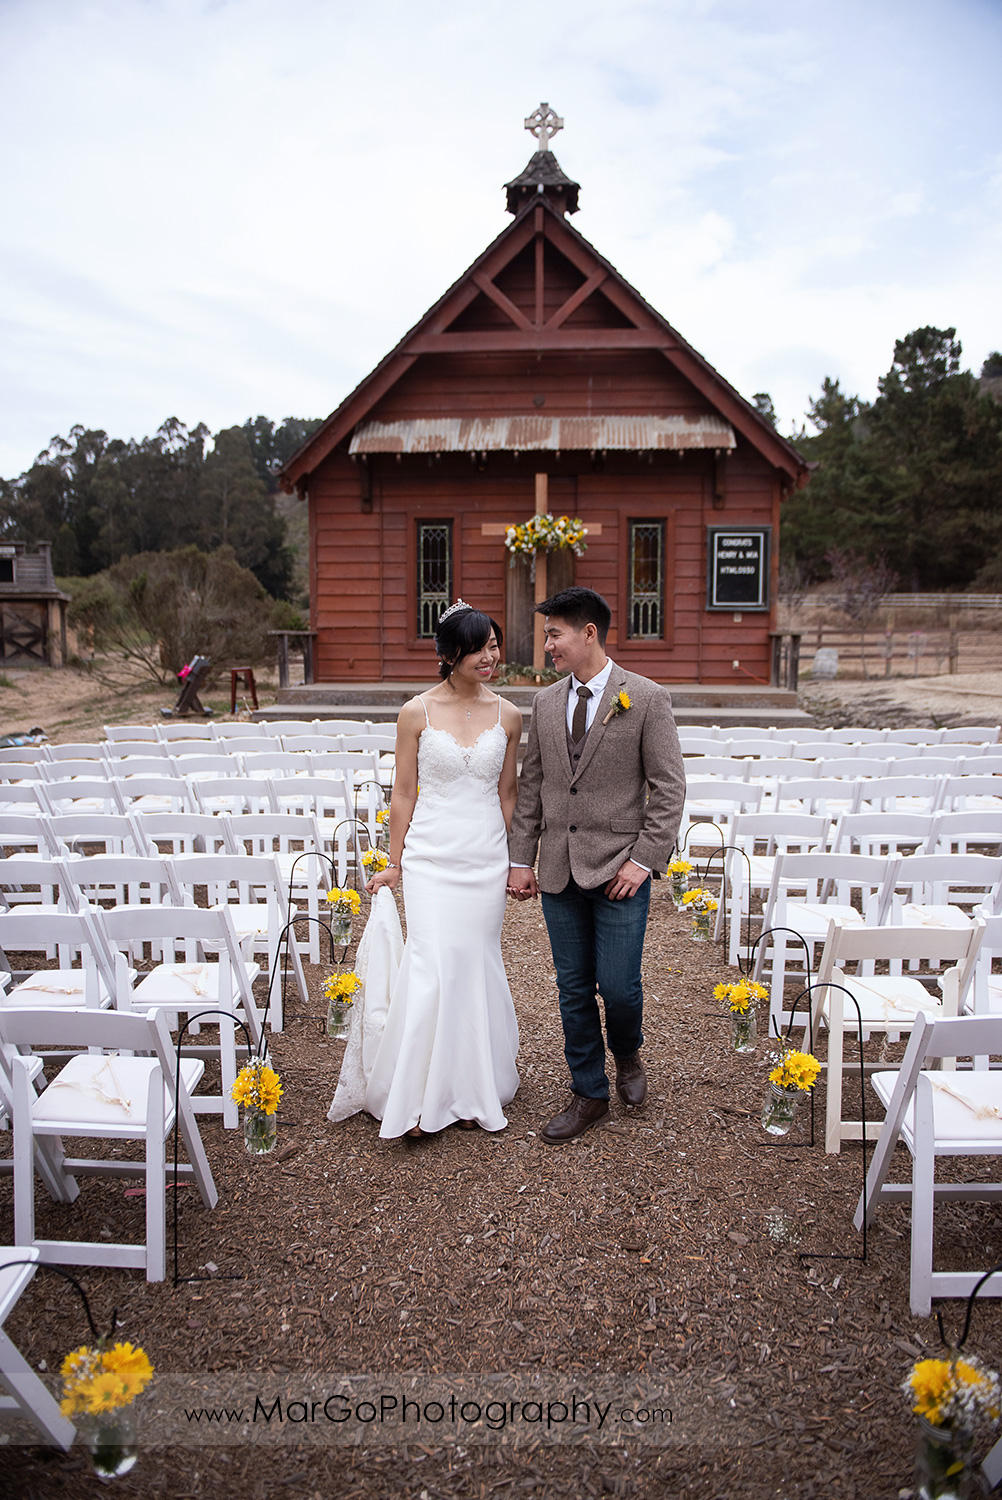 bride and groom holding hands and walking in forn of small church at Long Branch Saloon & Farms in Half Moon Bay